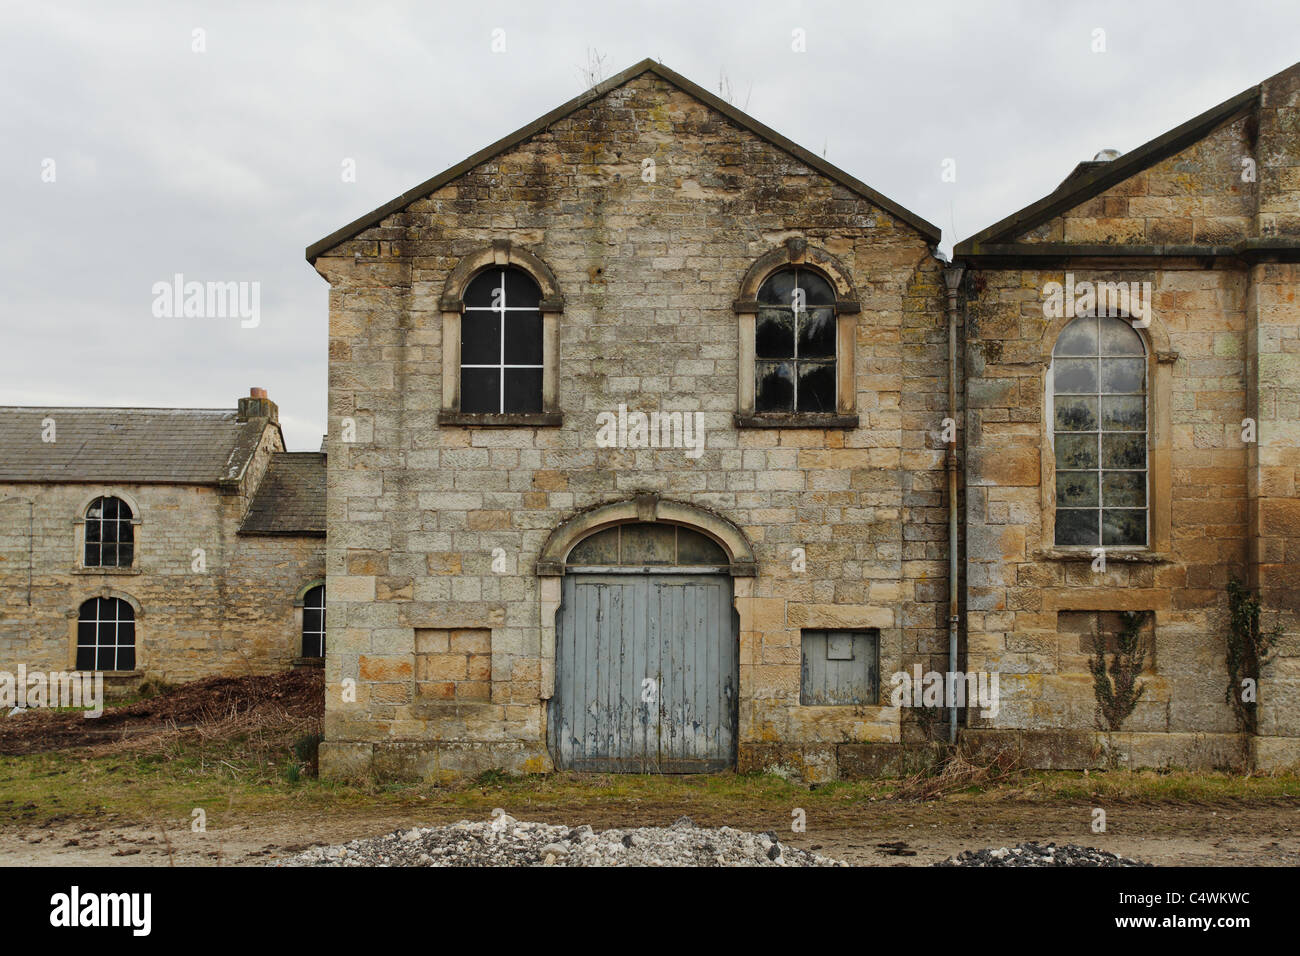 An old barn/saw mill with Facial Characters (eyes, mouth, cheeks), North Yorkshire - Stock Image